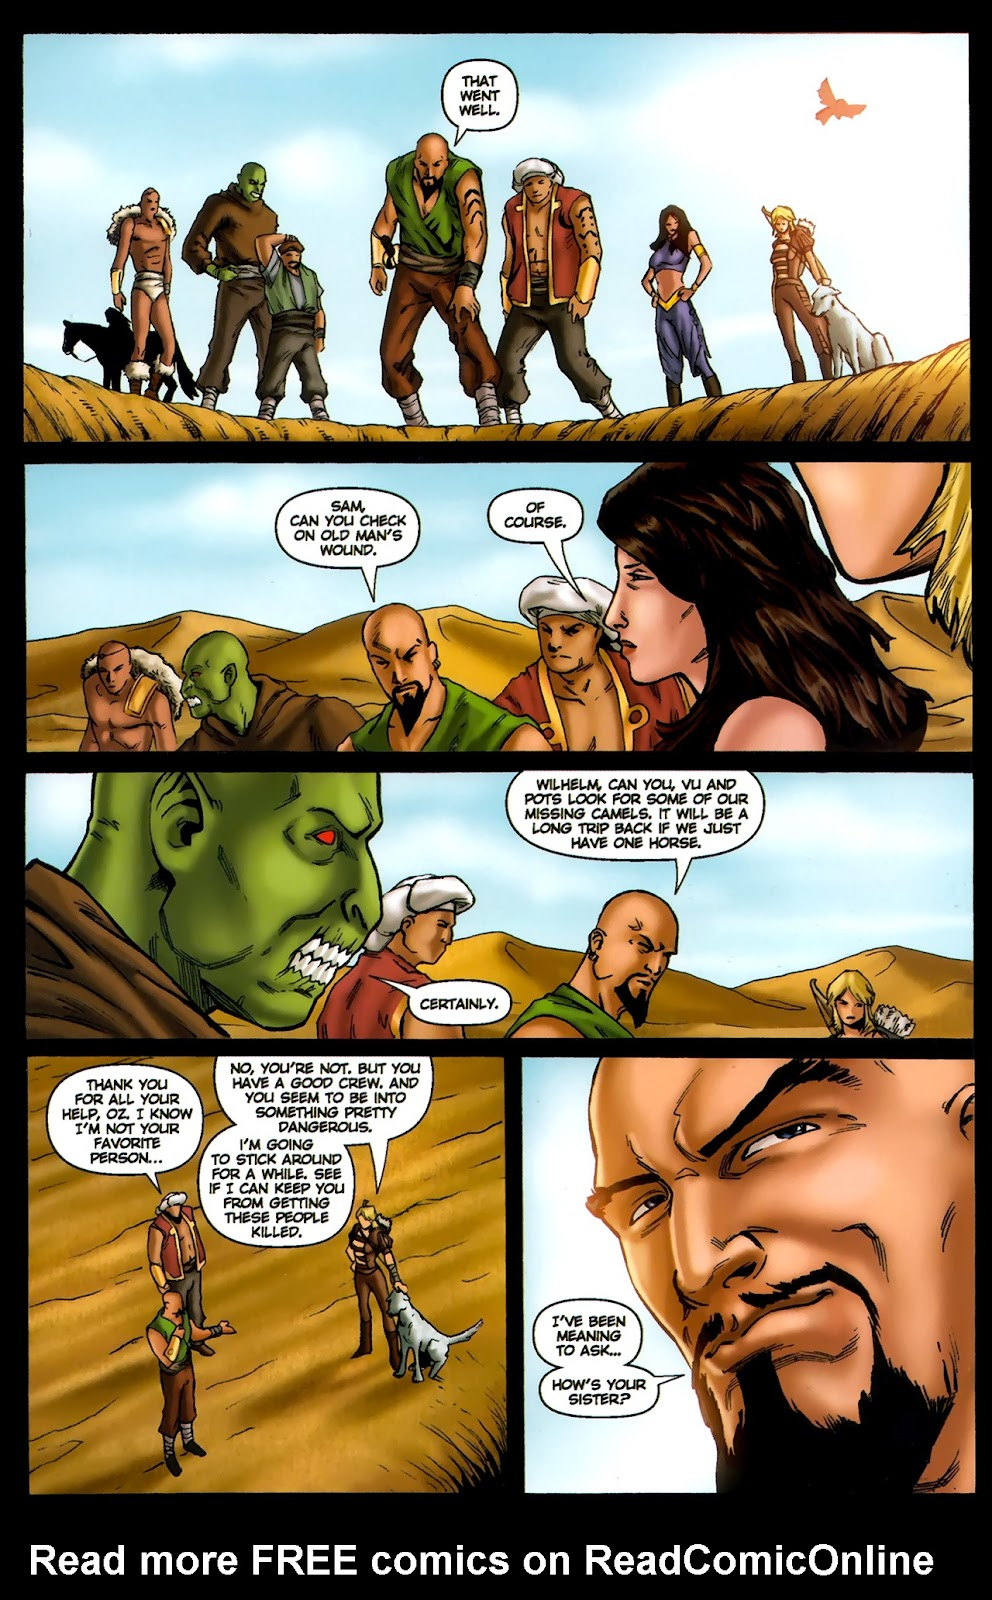 1001 Arabian Nights: The Adventures of Sinbad Issue #13 Page 23